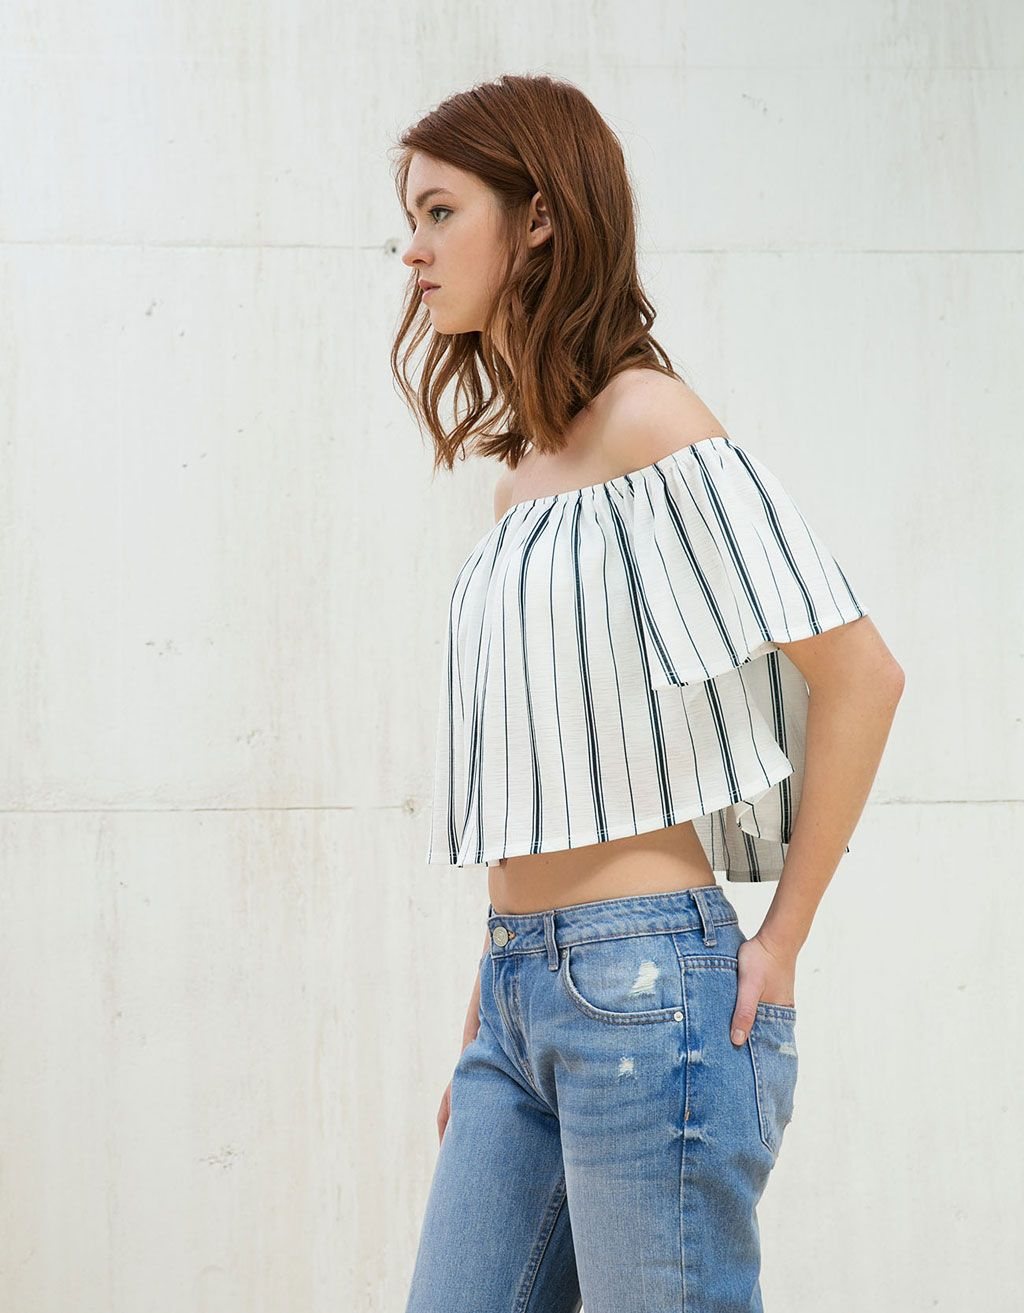 54526ae3b9e Veracruz ruffle top. Discover this and many more items in Bershka with new  products every week